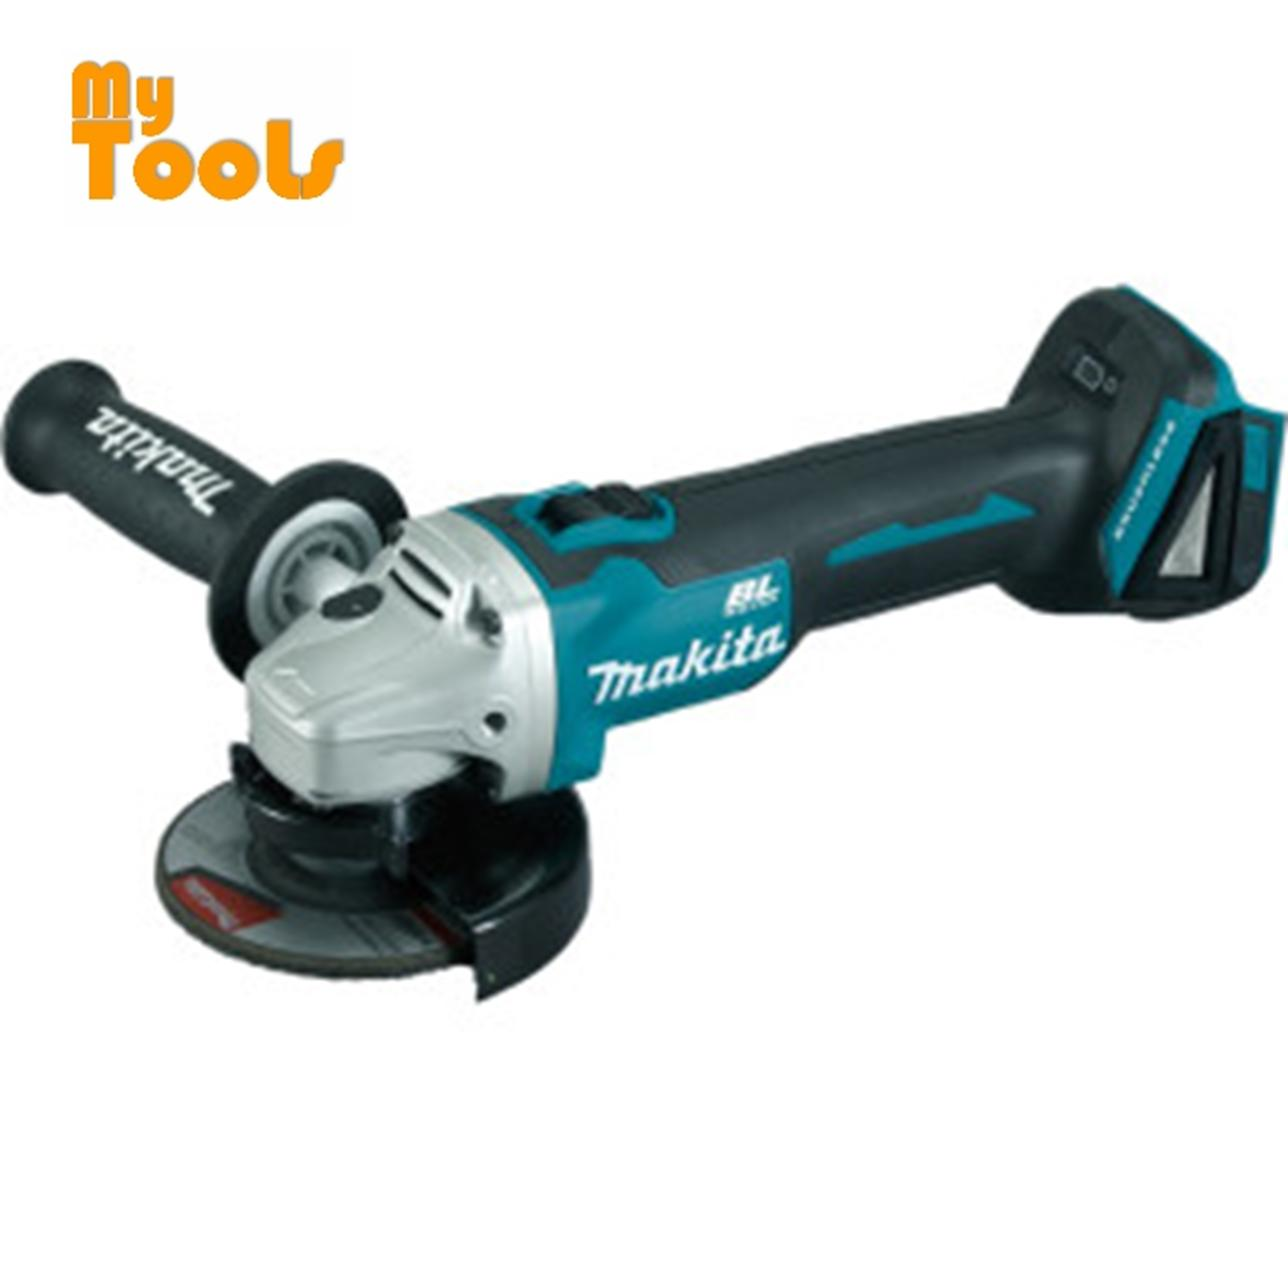 Makita DGA900Z BL LXT 9Angle Grinder Multicolour 36 V 230 Mm Without Battery And Charger